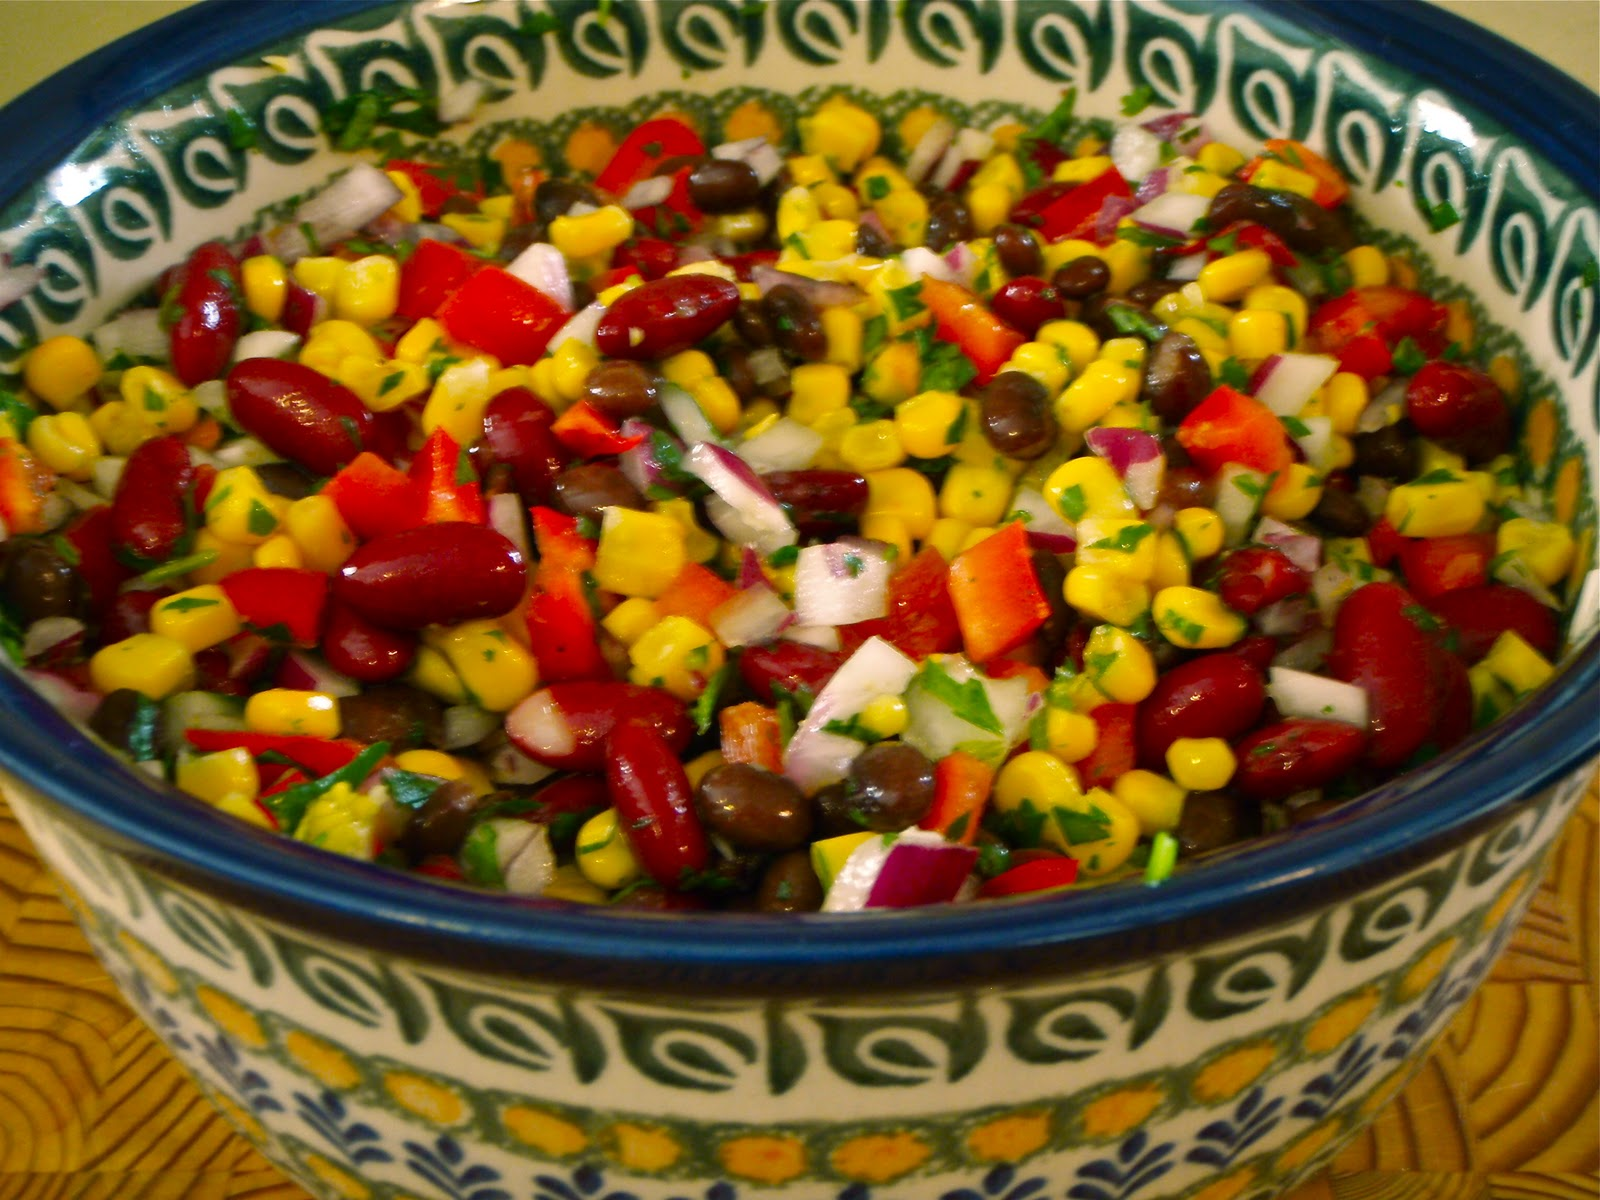 CHUCK WAGON RECIPES: Black Bean Salad